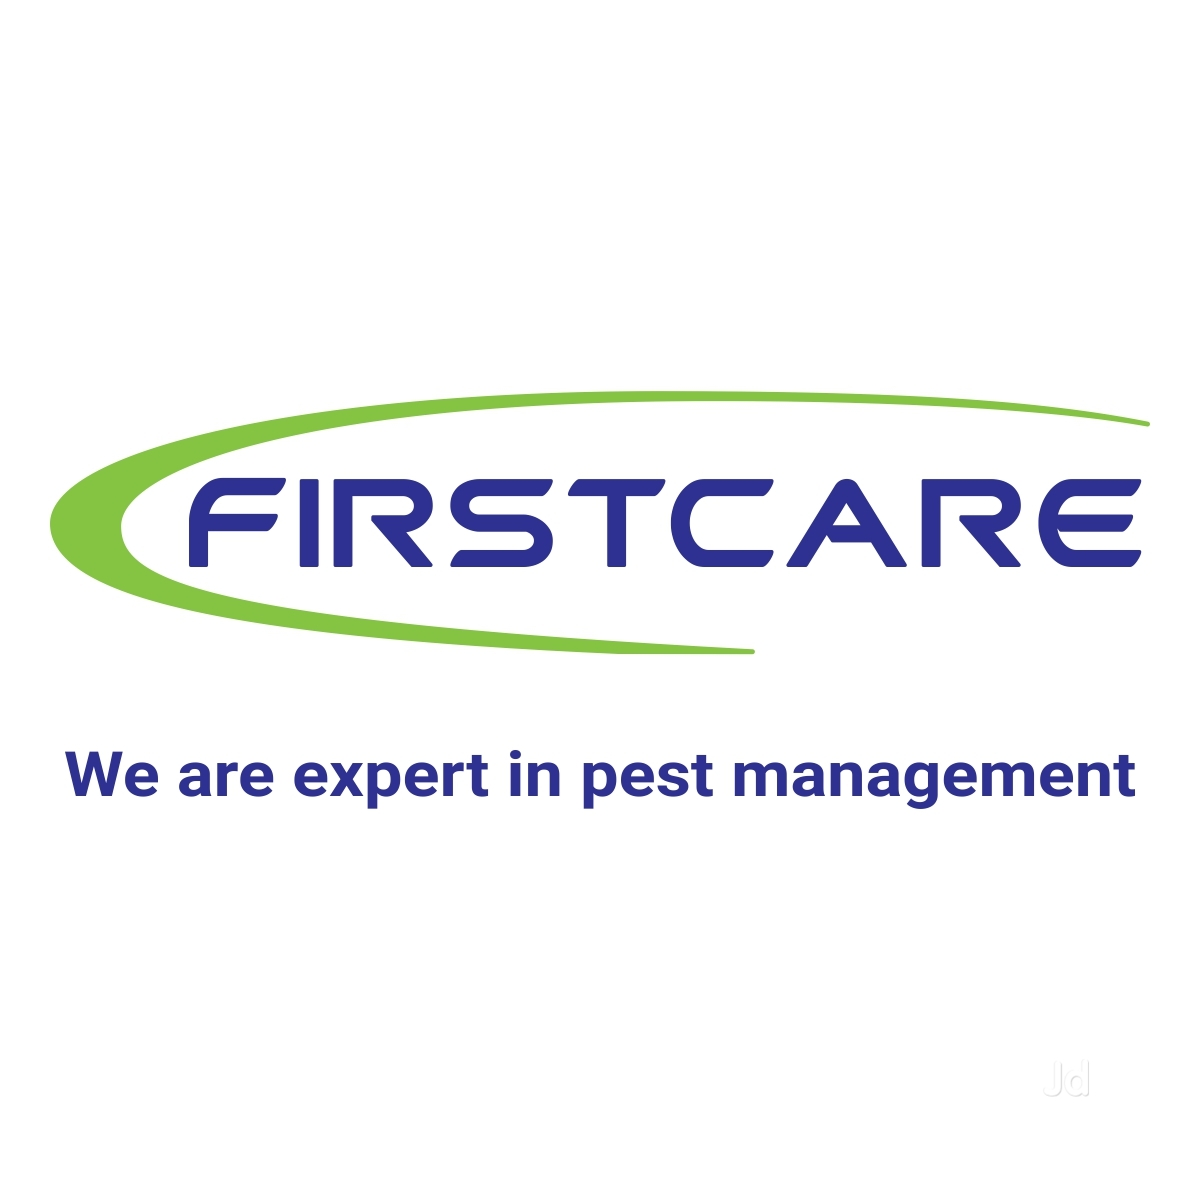 Firstcare Environmental Services Pvt Ltd